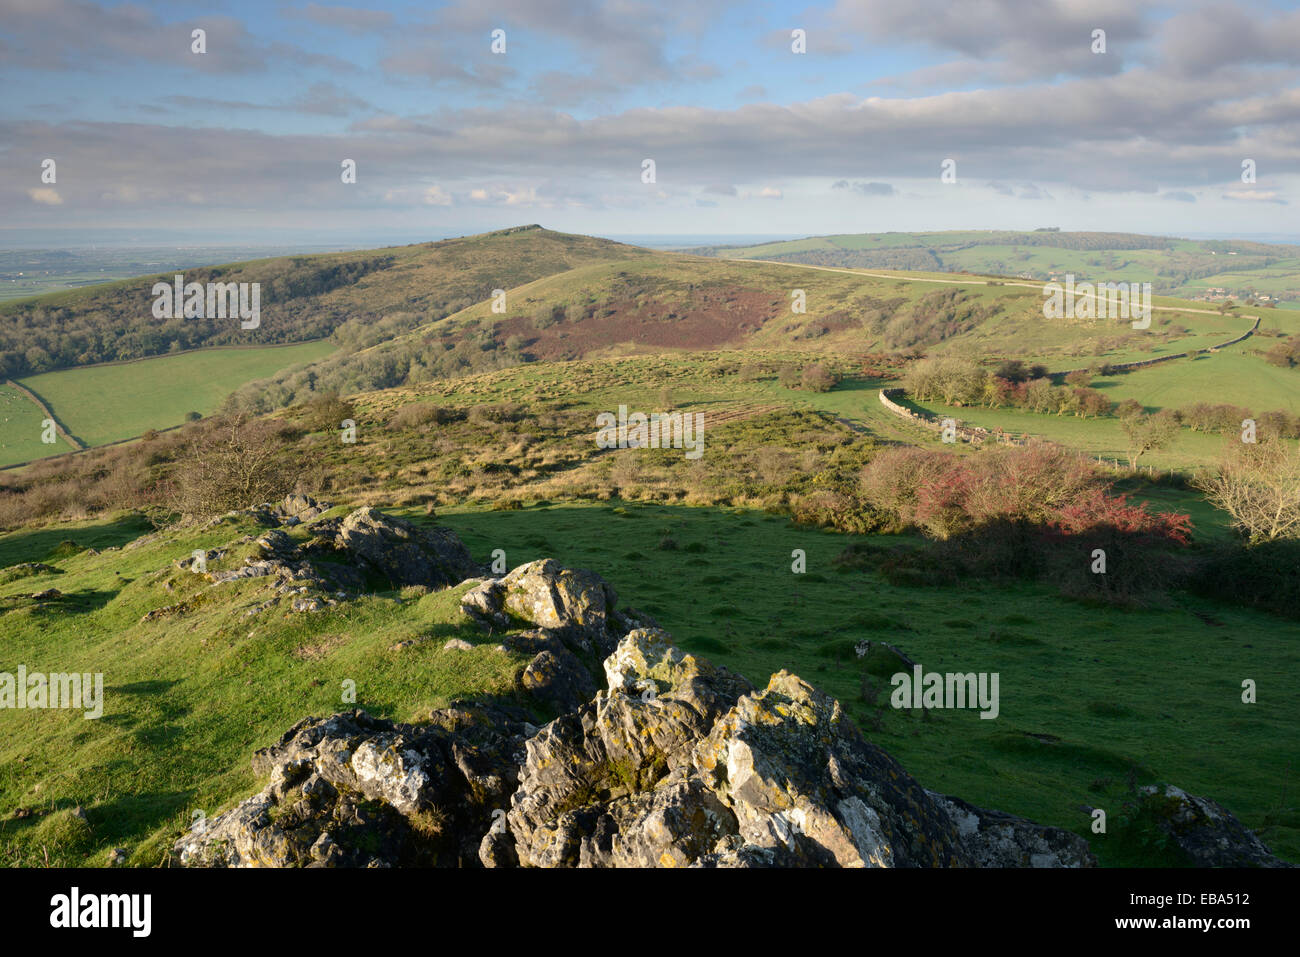 The distinctive top of Crook Peak viewed from Wavering Down on the Mendip Hills, Somerset. - Stock Image